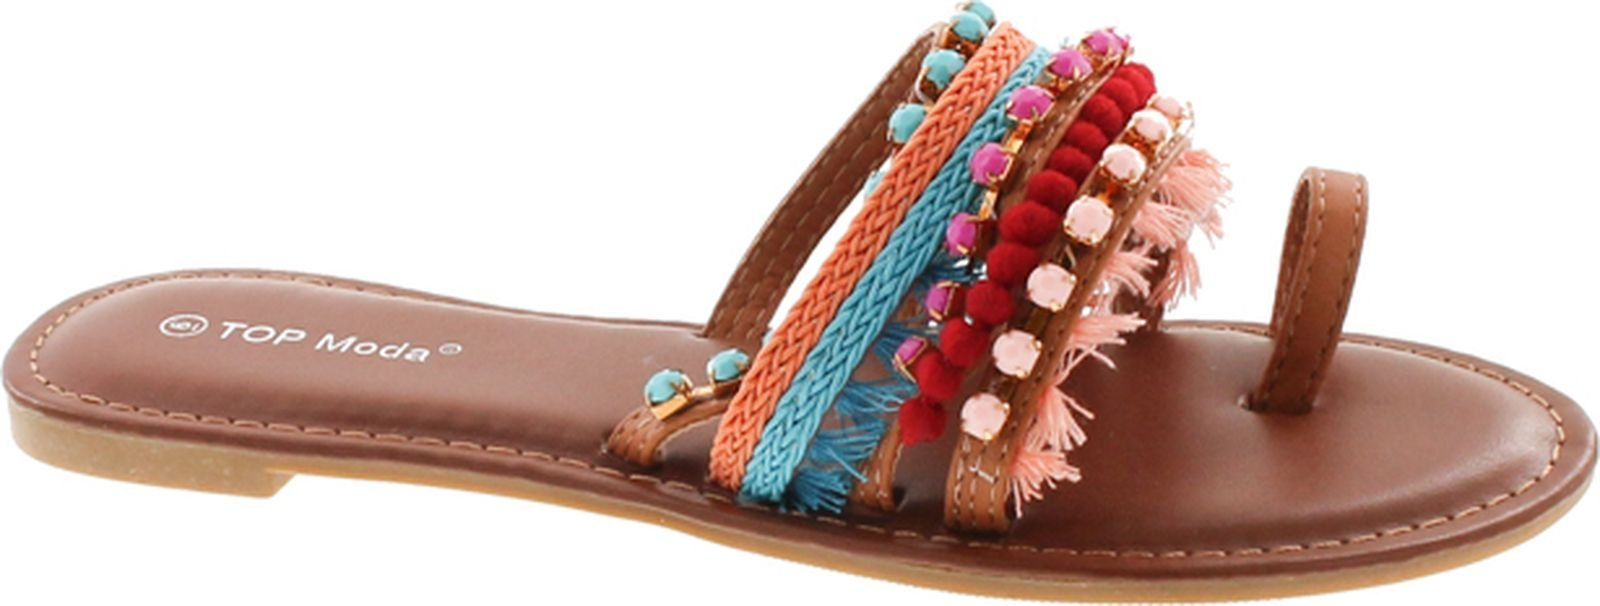 Top Moda Women's Flat Bohemian Tribal Style Sandal with Fringe and Faux Stones,Tan,7